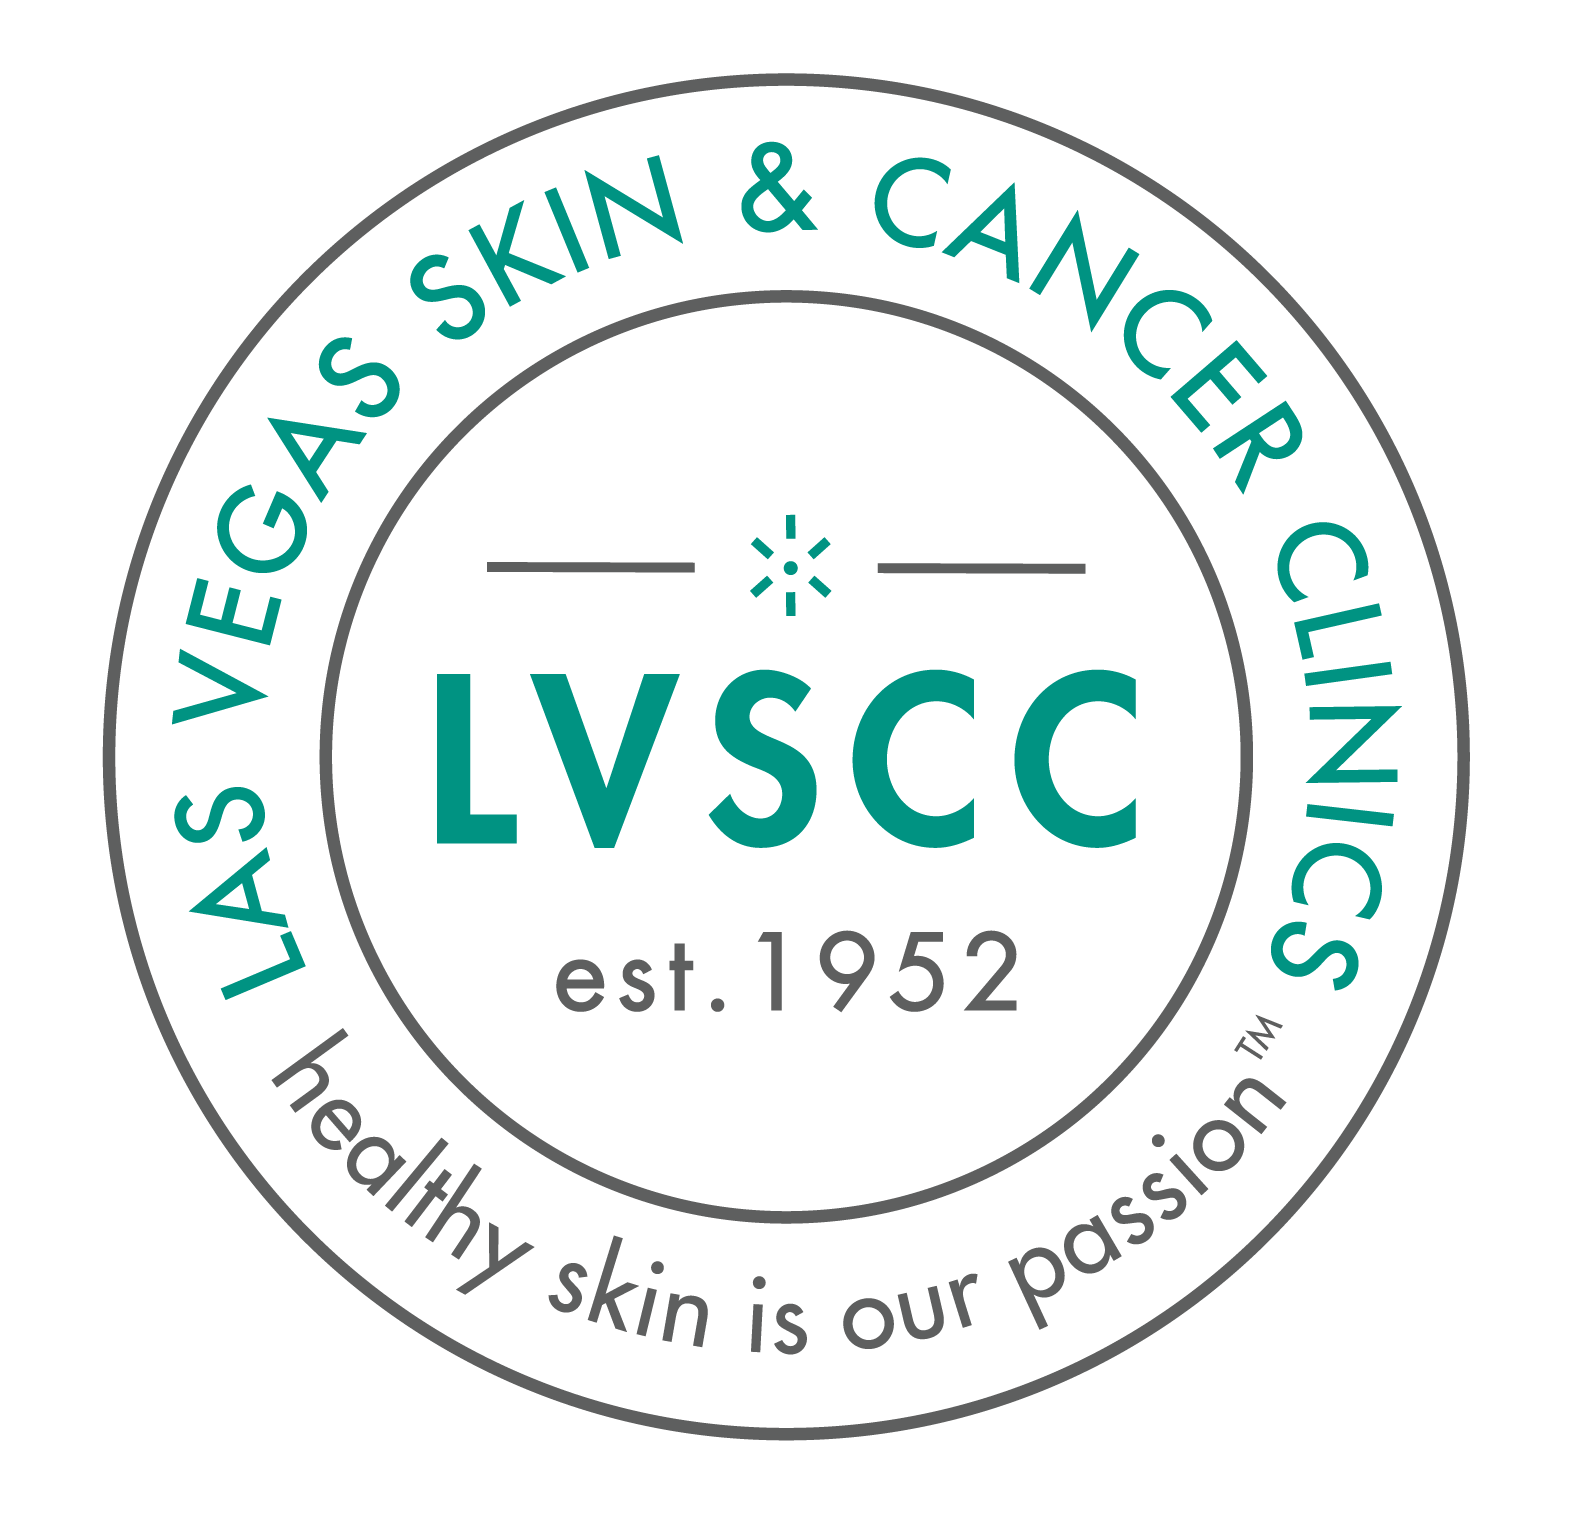 Las Vegas Skin & Cancer Tenaya Comprises a Leading Cosmetic Dermatologist in Las Vegas, NV